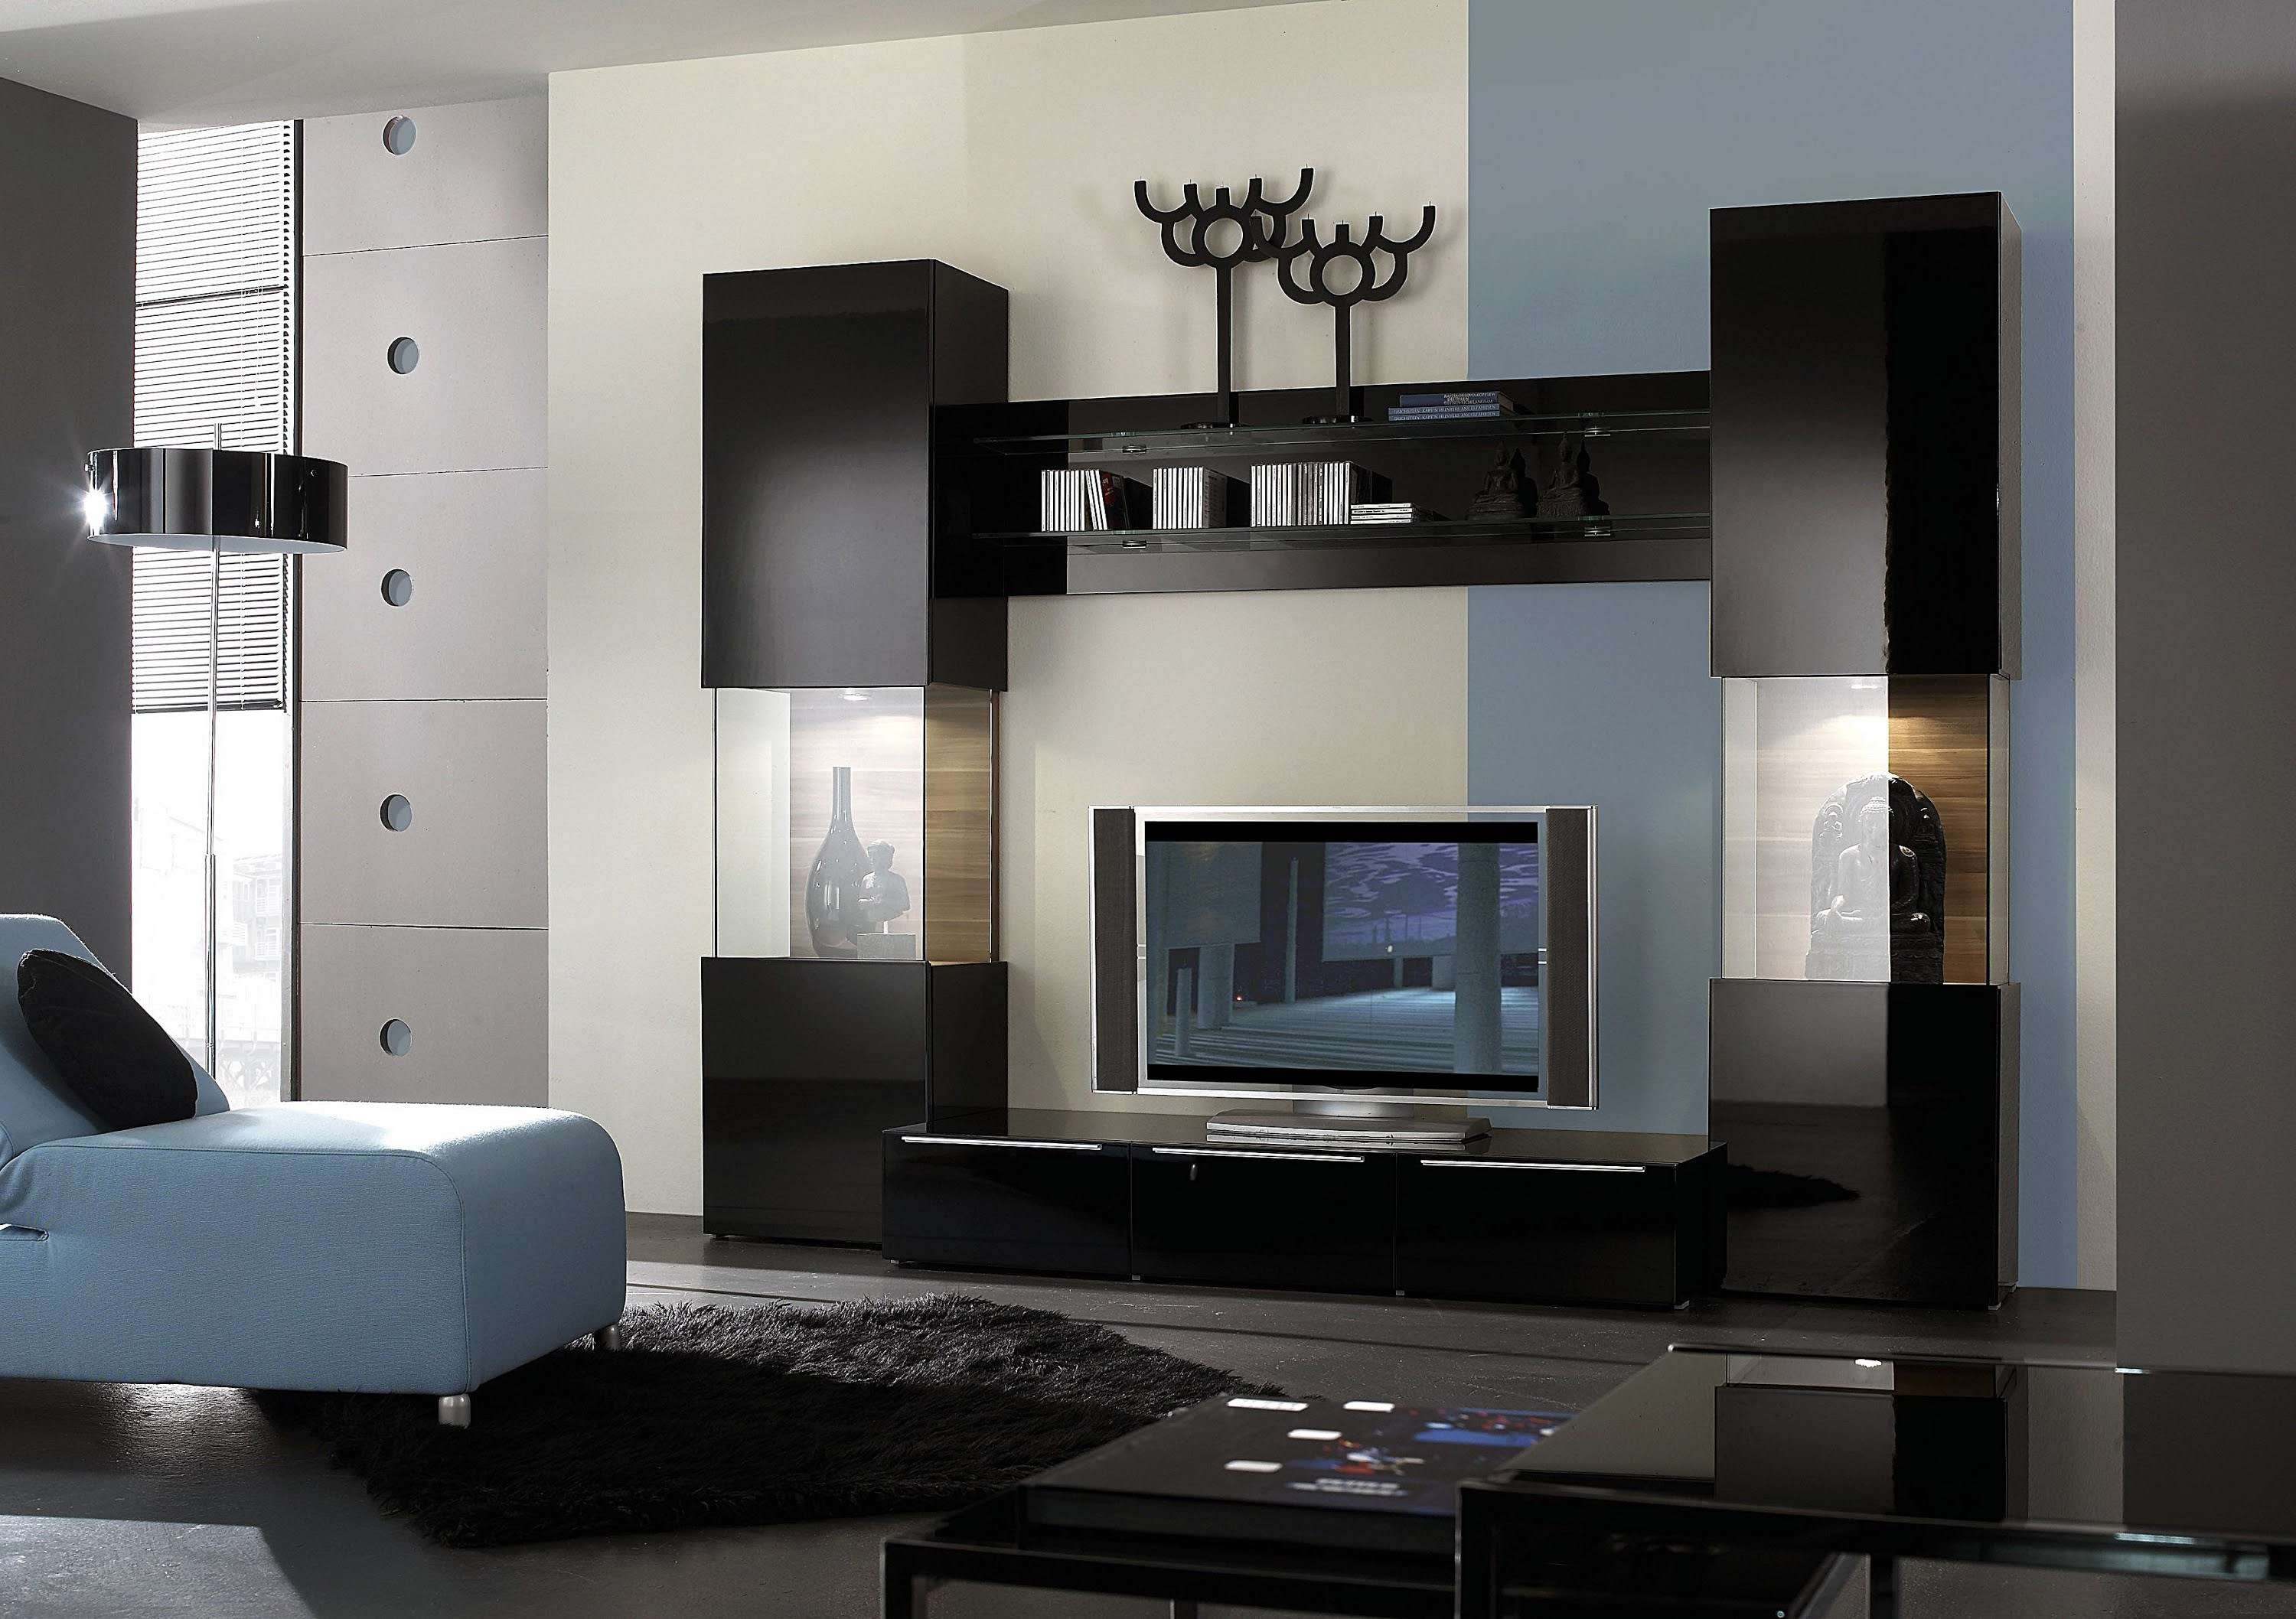 20 Modern Tv Unit Design Ideas For Bedroom & Living Room With Pictures Throughout Modern Design Tv Cabinets (View 11 of 20)